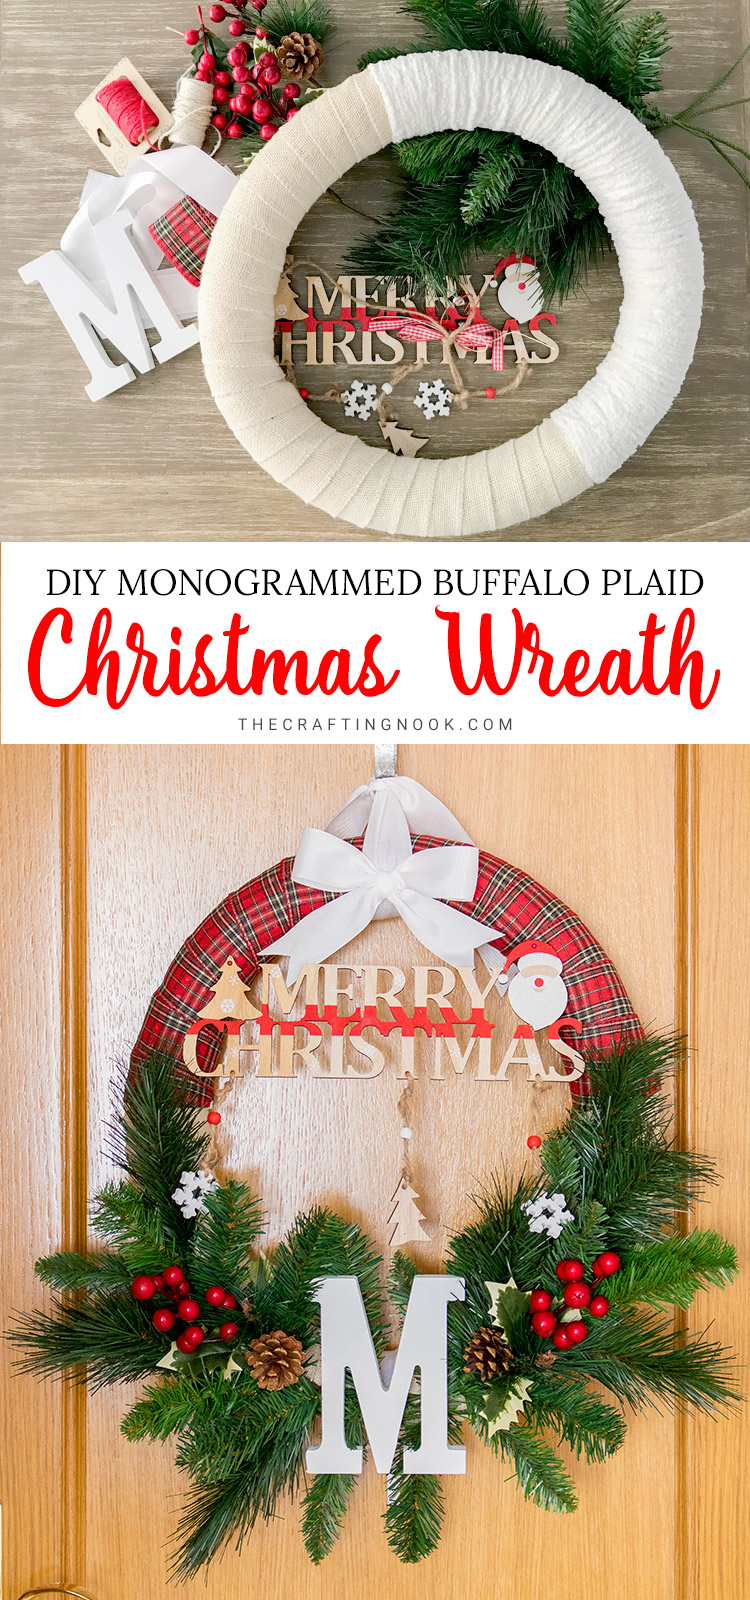 DIY Buffalo Plaid Christmas Wreath